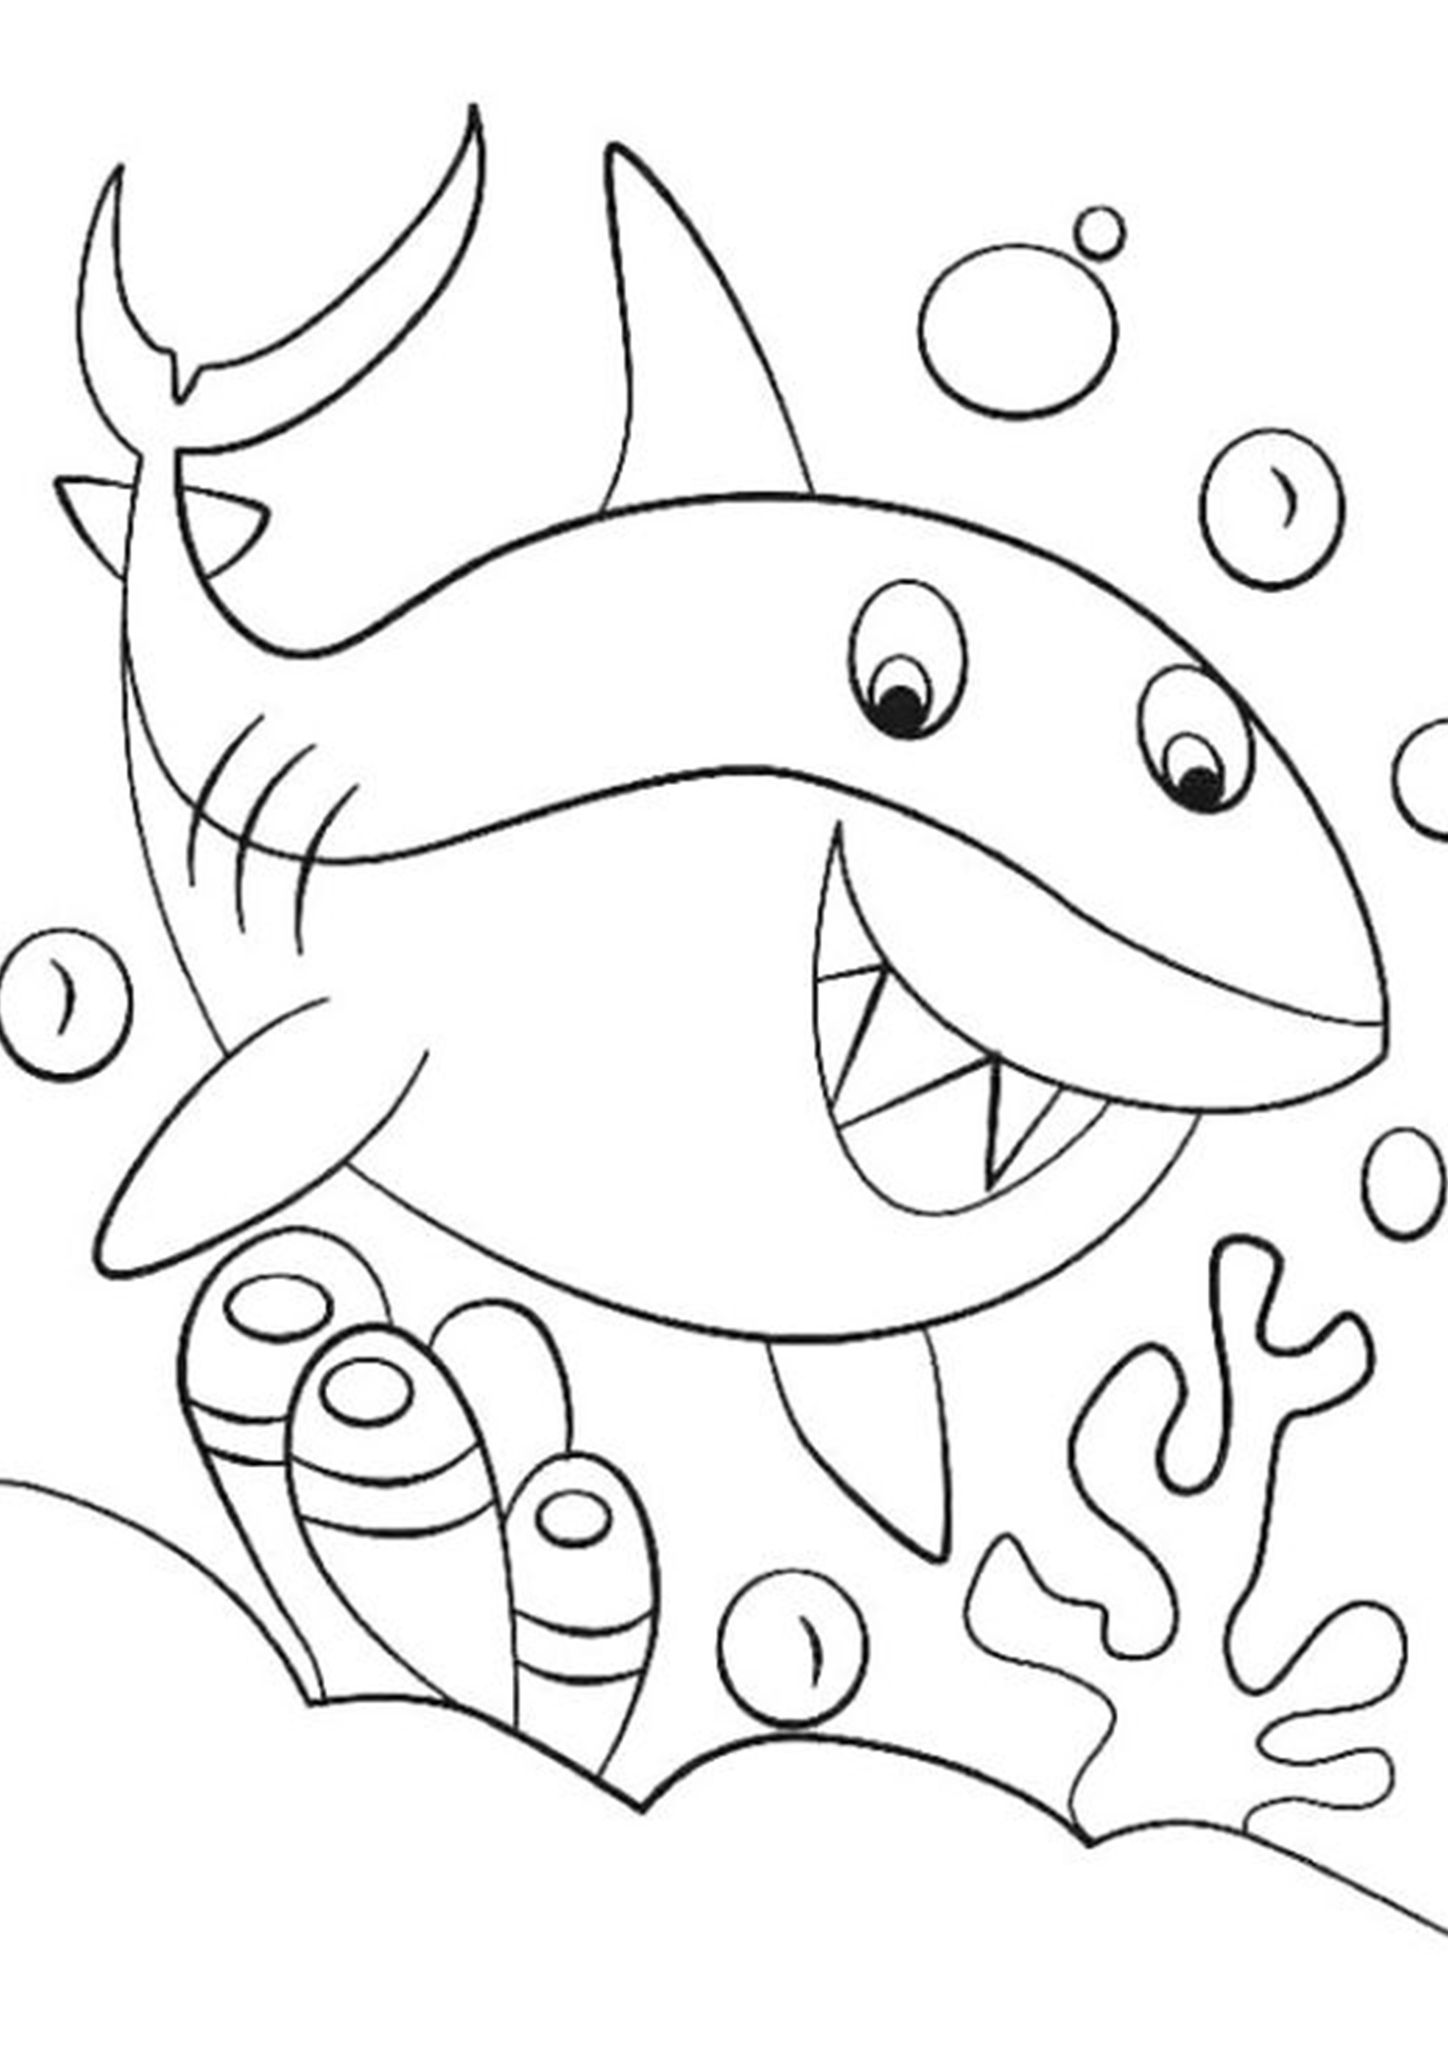 Free Cute Shark Coloring Page Shark Coloring Pages Coloring Pages Cute Shark